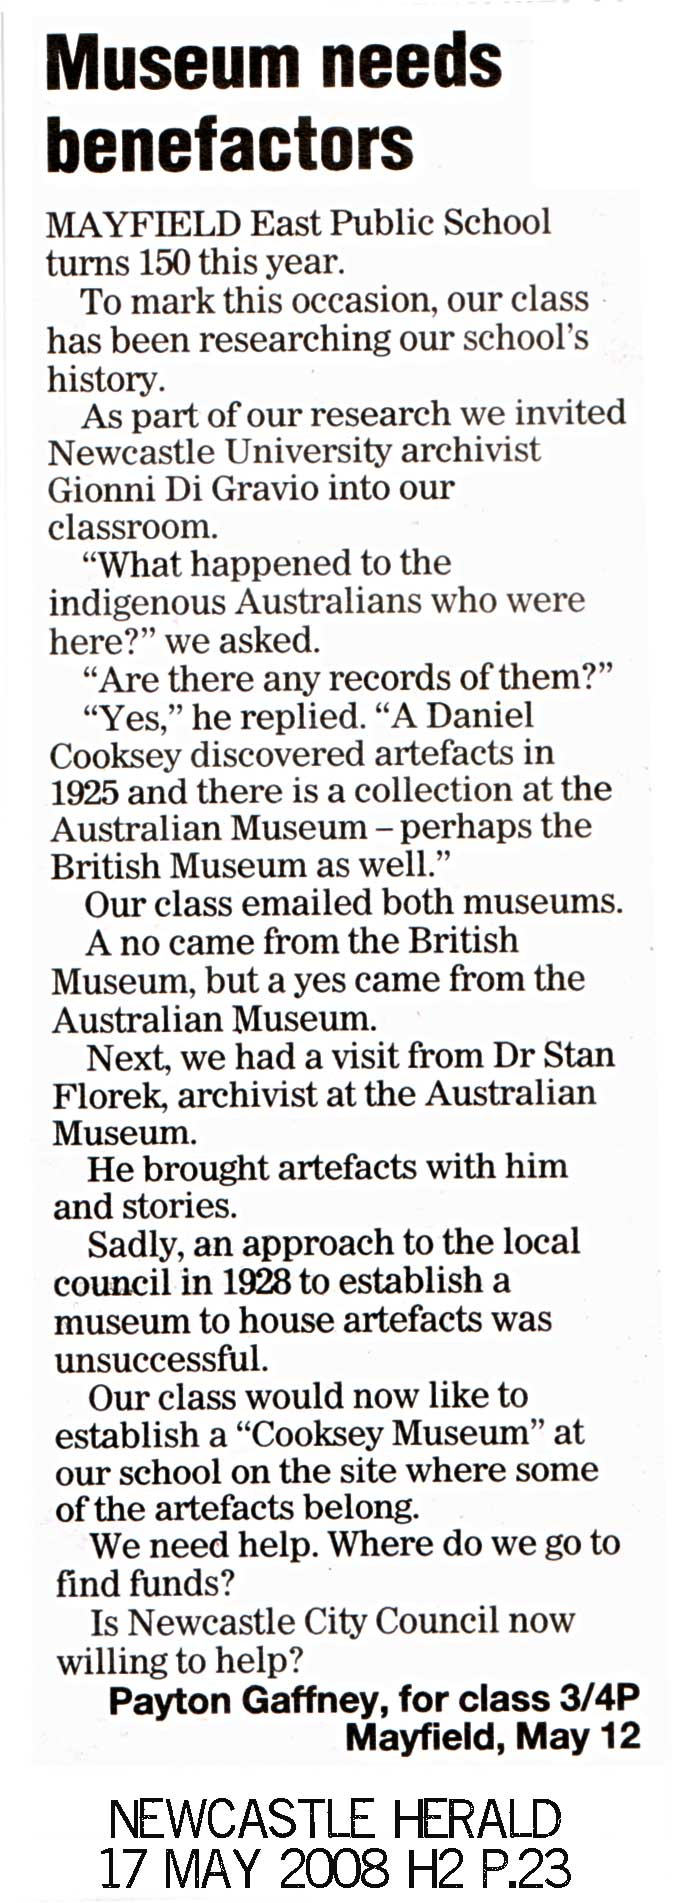 Museums Need Benefactors - Letter to the Herald 17 May 2008 p.23